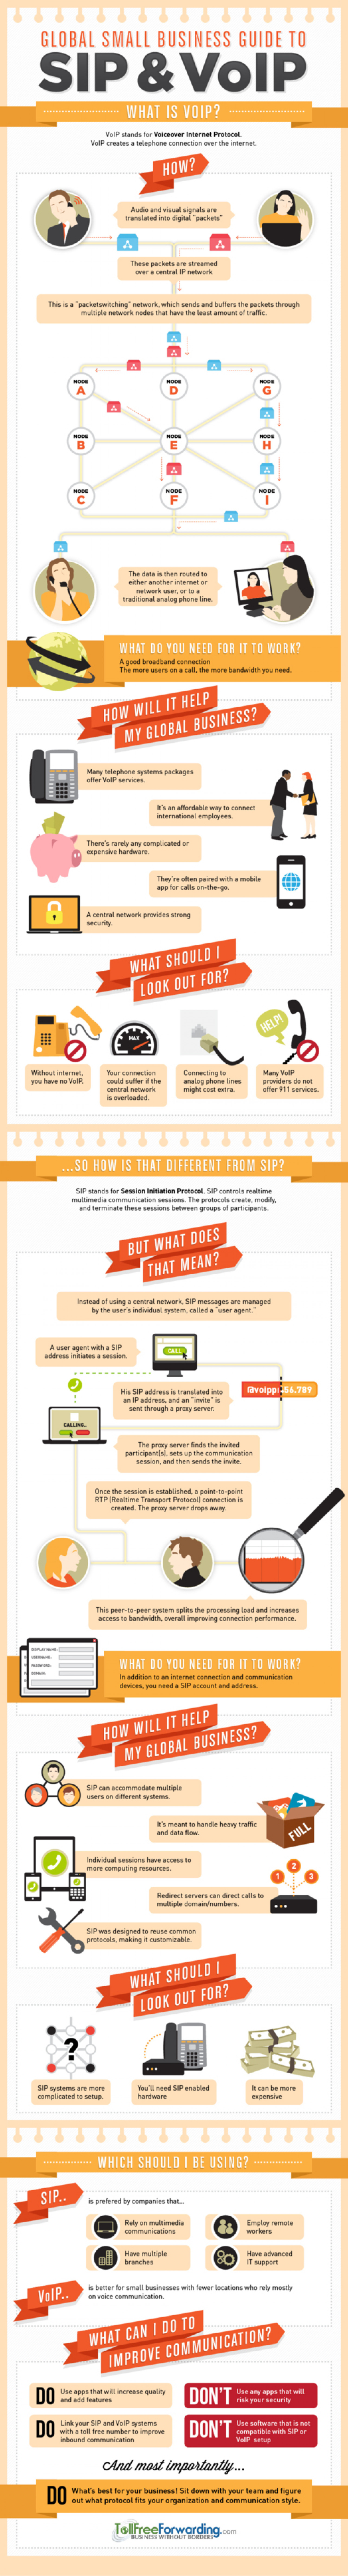 Global Small Business Guide to SIP and VoIP Infographic